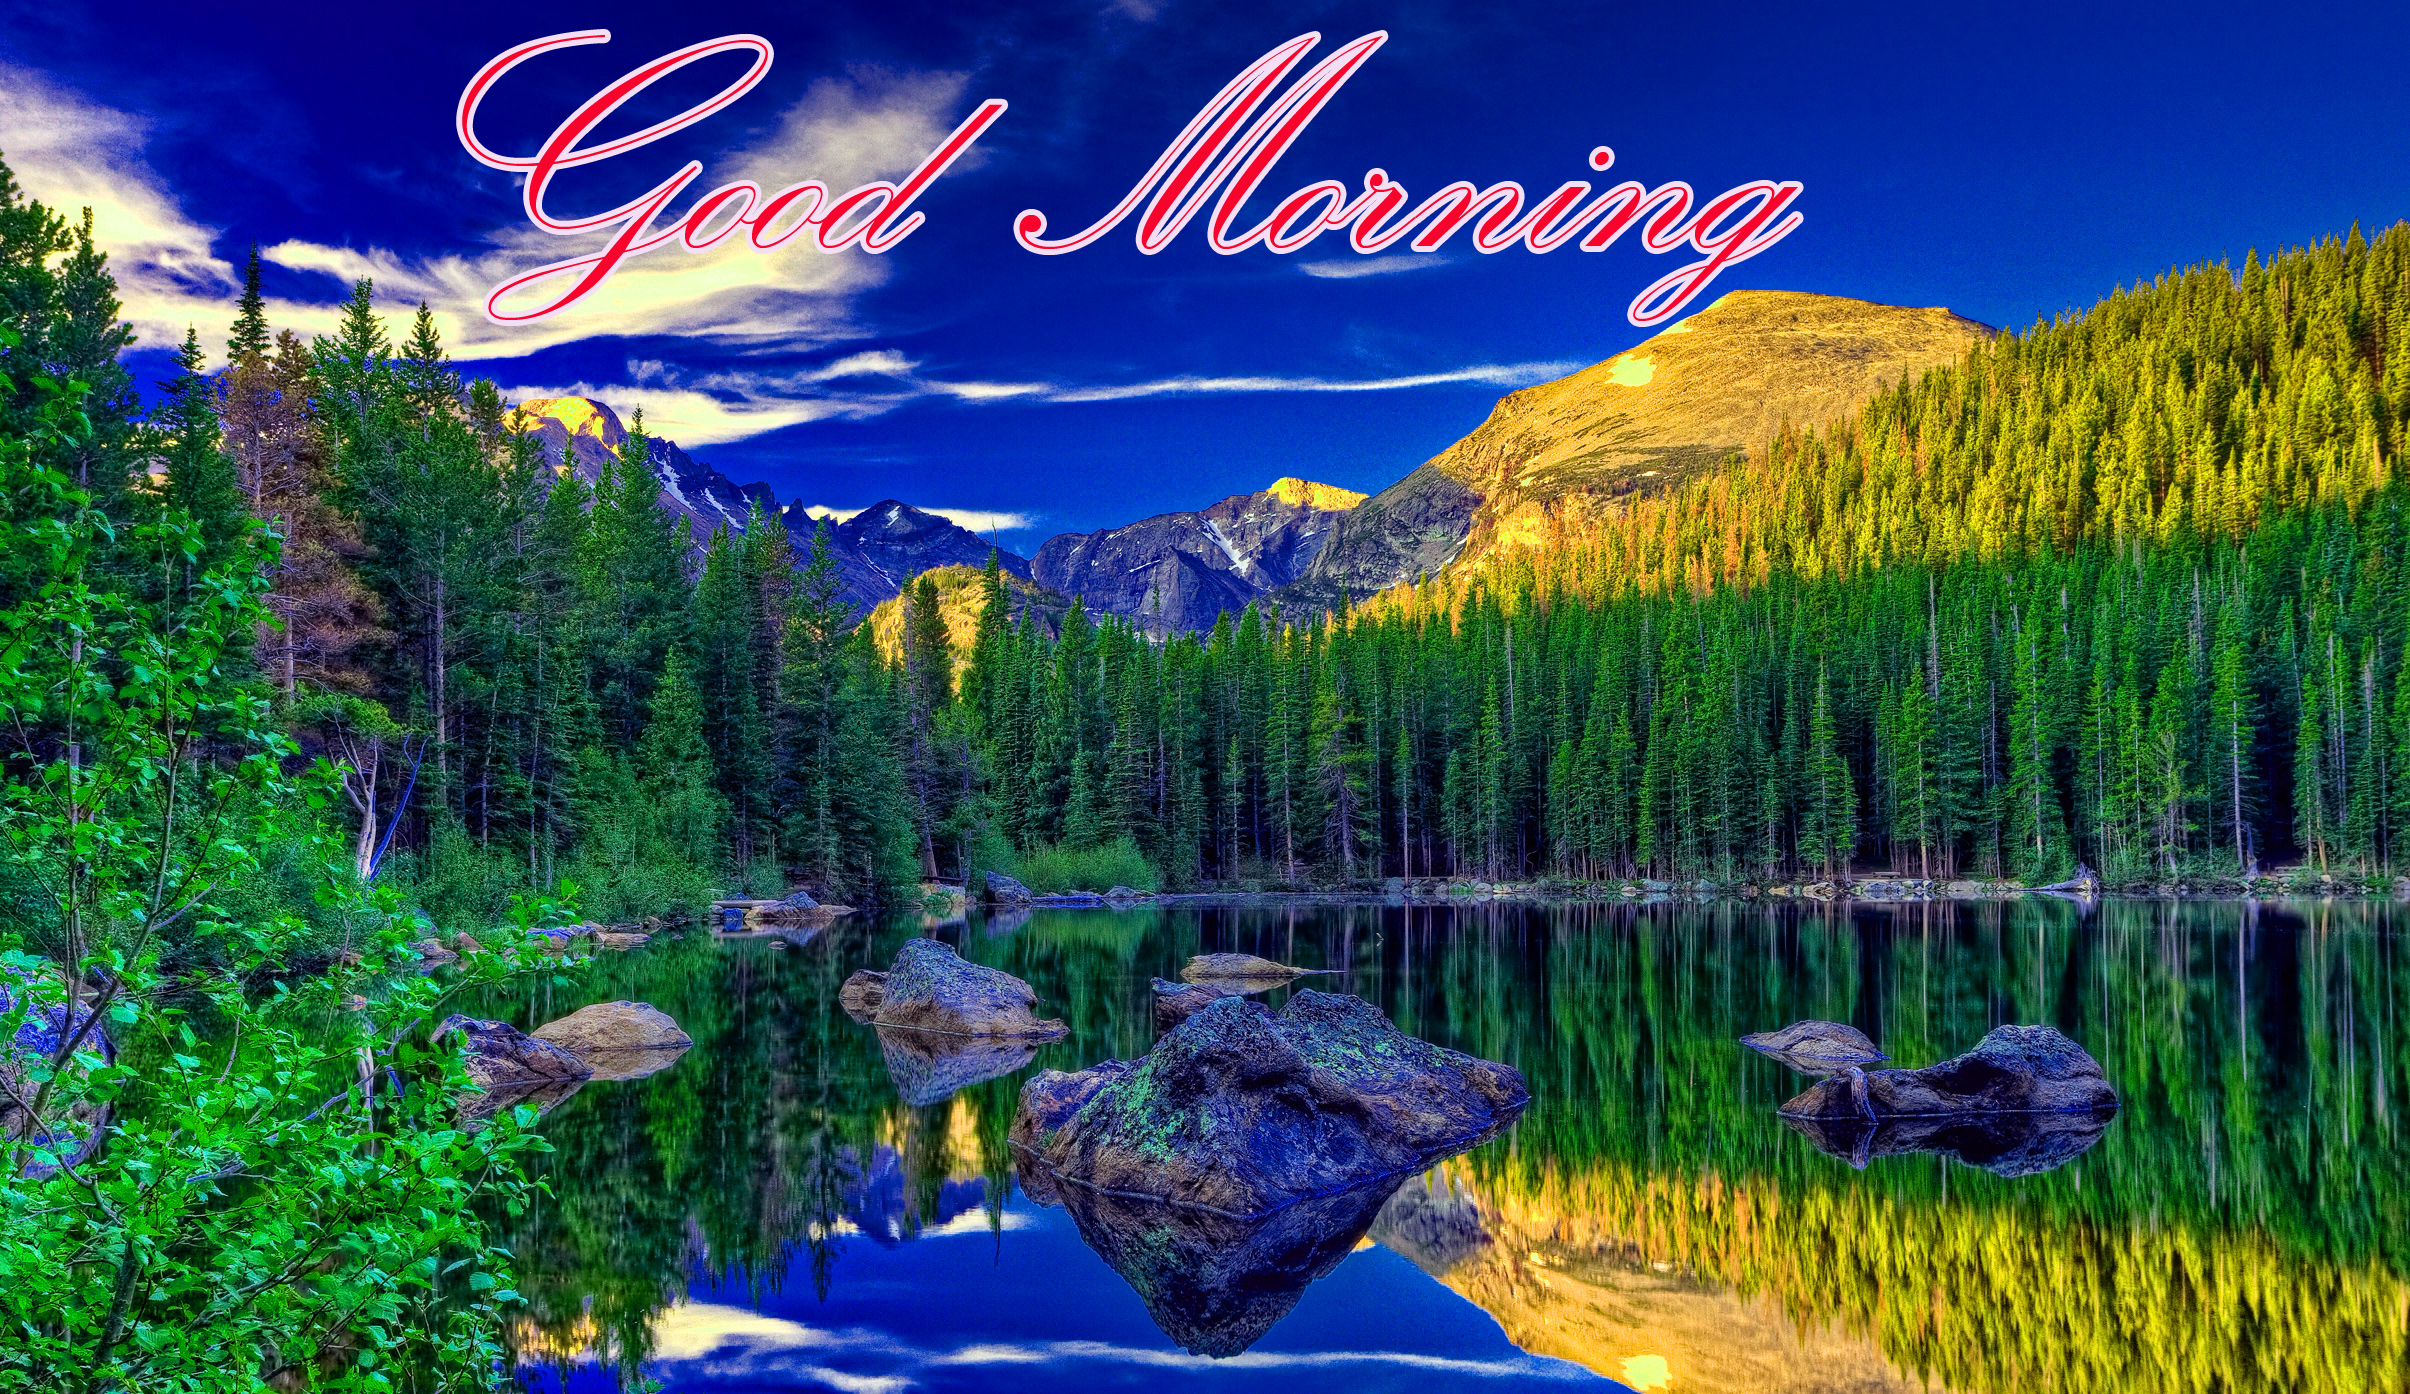 Good Morning Images Wallpaper photo Pictures Pics Download With Nature